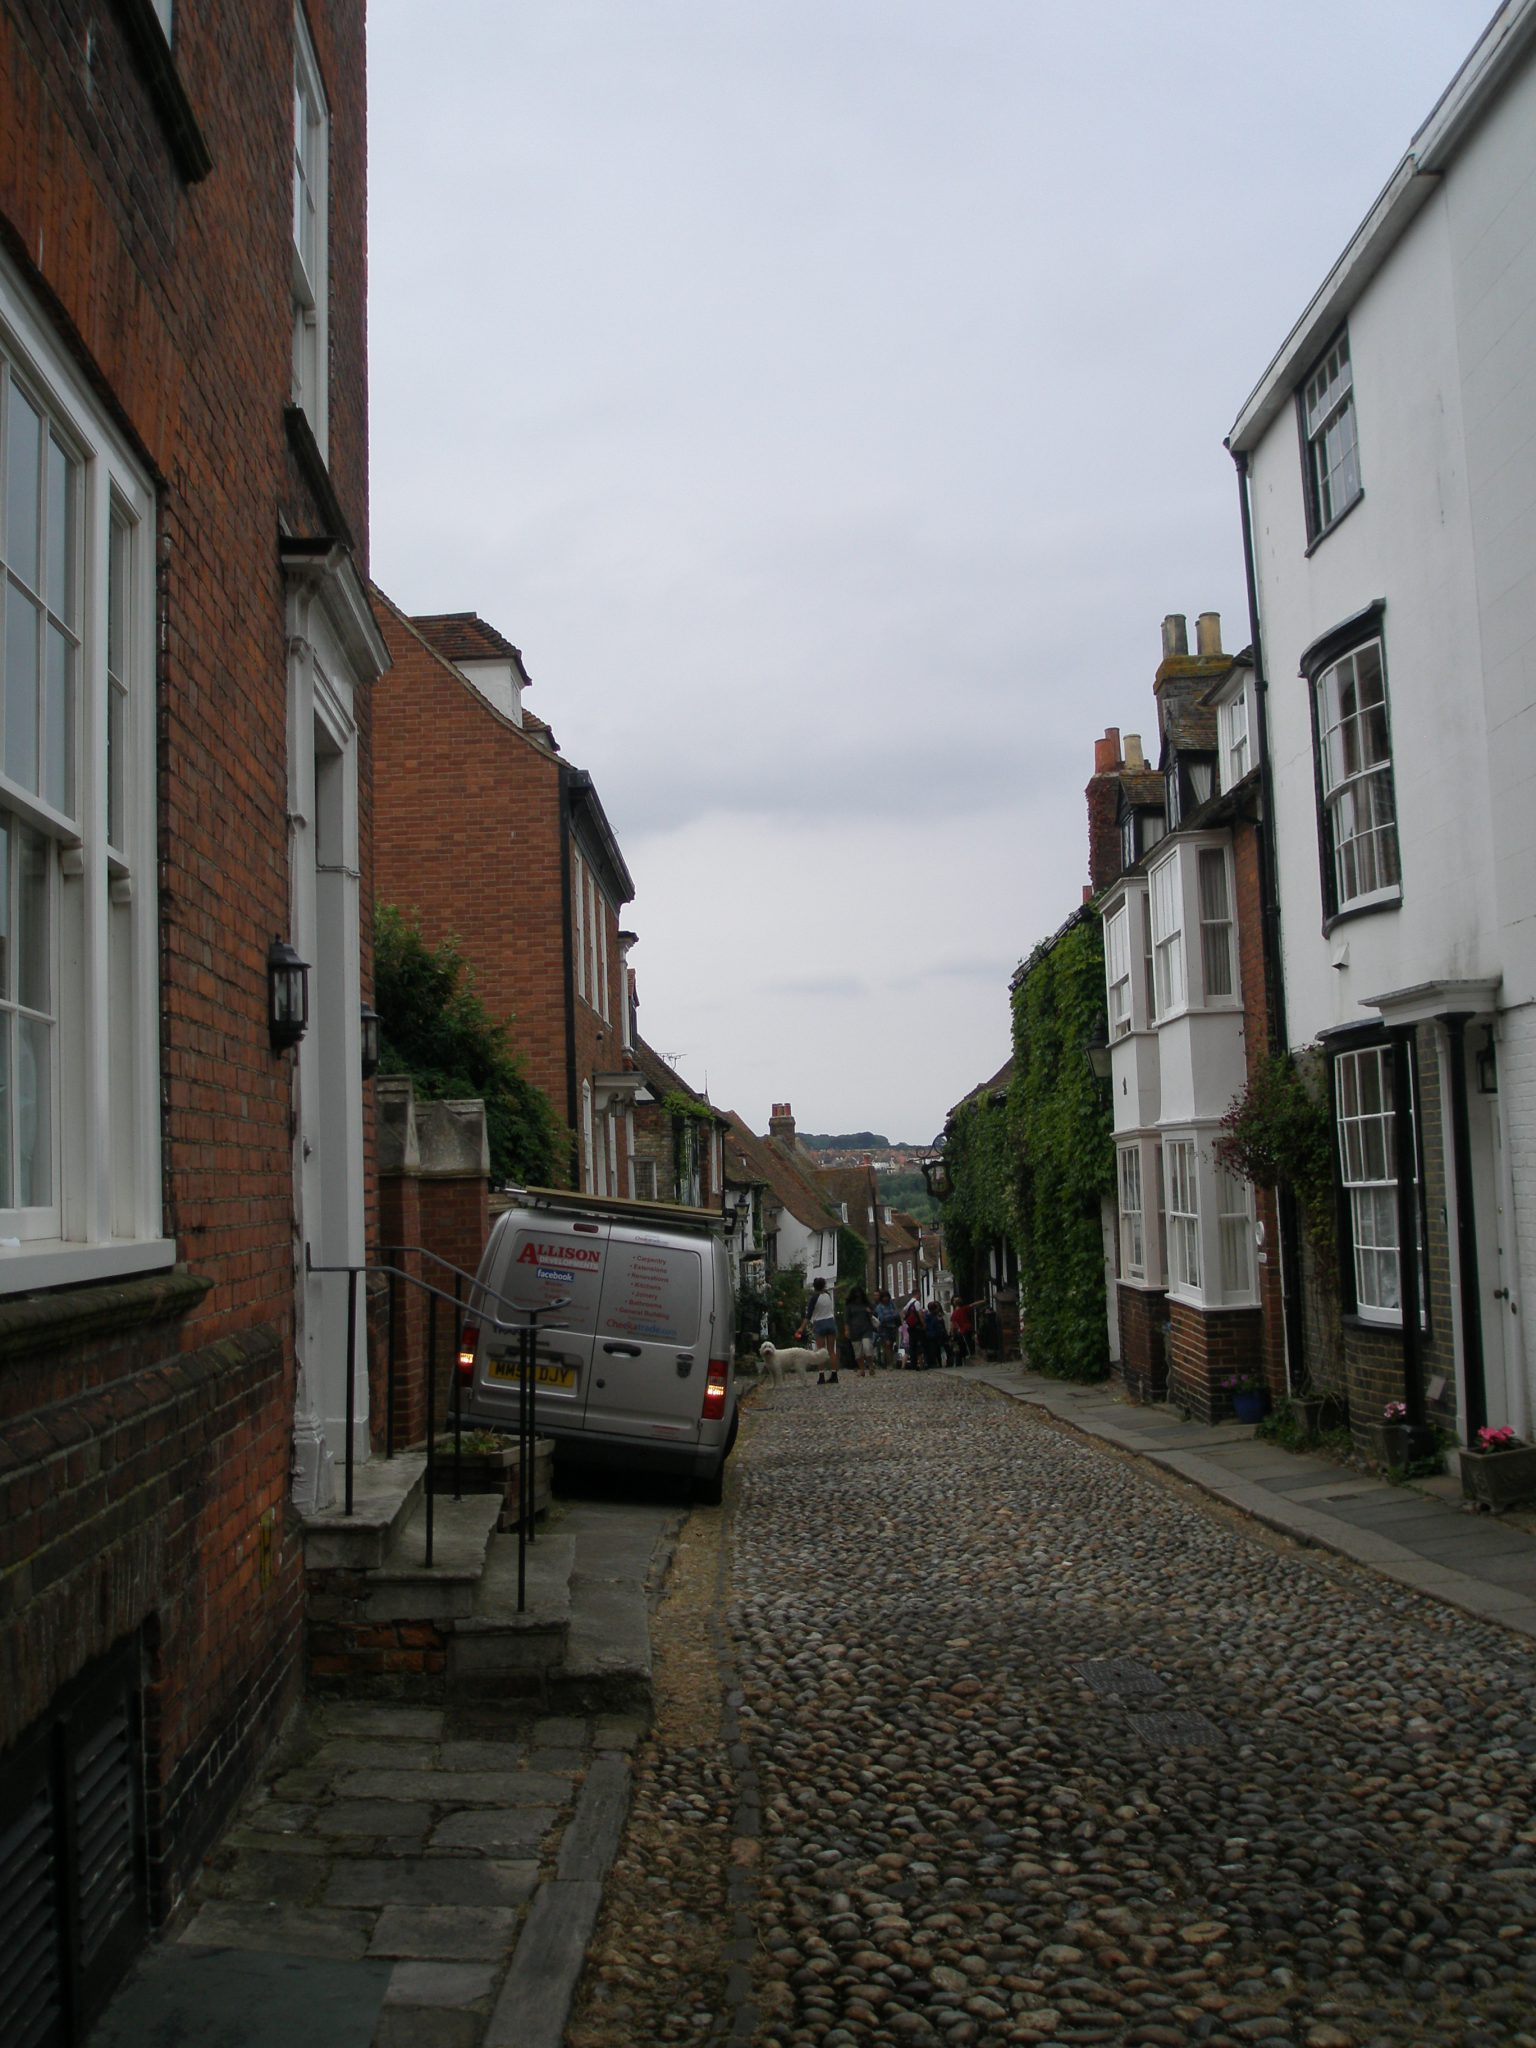 We're at the top of Mermaid Street, about to head downhill to the Mermaid Inn, which is the ivy-covered building on the right hand side of the Street. Starvation had set in...'twas time for LUNCH.